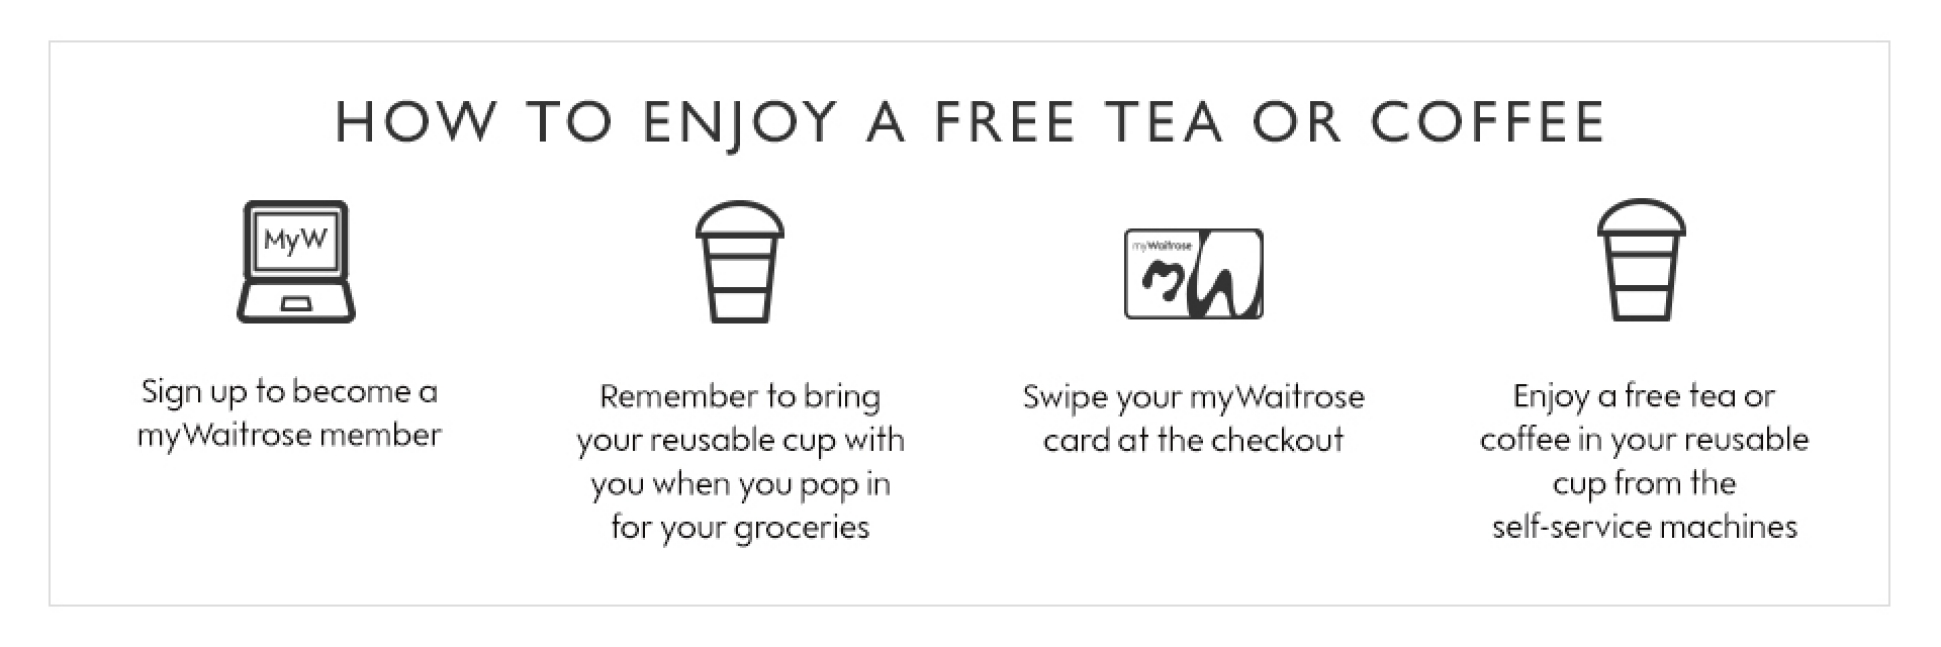 Free tea or coffee Waitrose Job Application Form Online on online order form, online job applications clip art, online contact form, temporary guardianship form, online software, research form, online survey form, online registration form, open enrollment form, online application icon, online job resume, quest lab requisition form, online job sites, job work order form, online job description, online application template, online job questionnaire, online job boards, online job training, online apps,